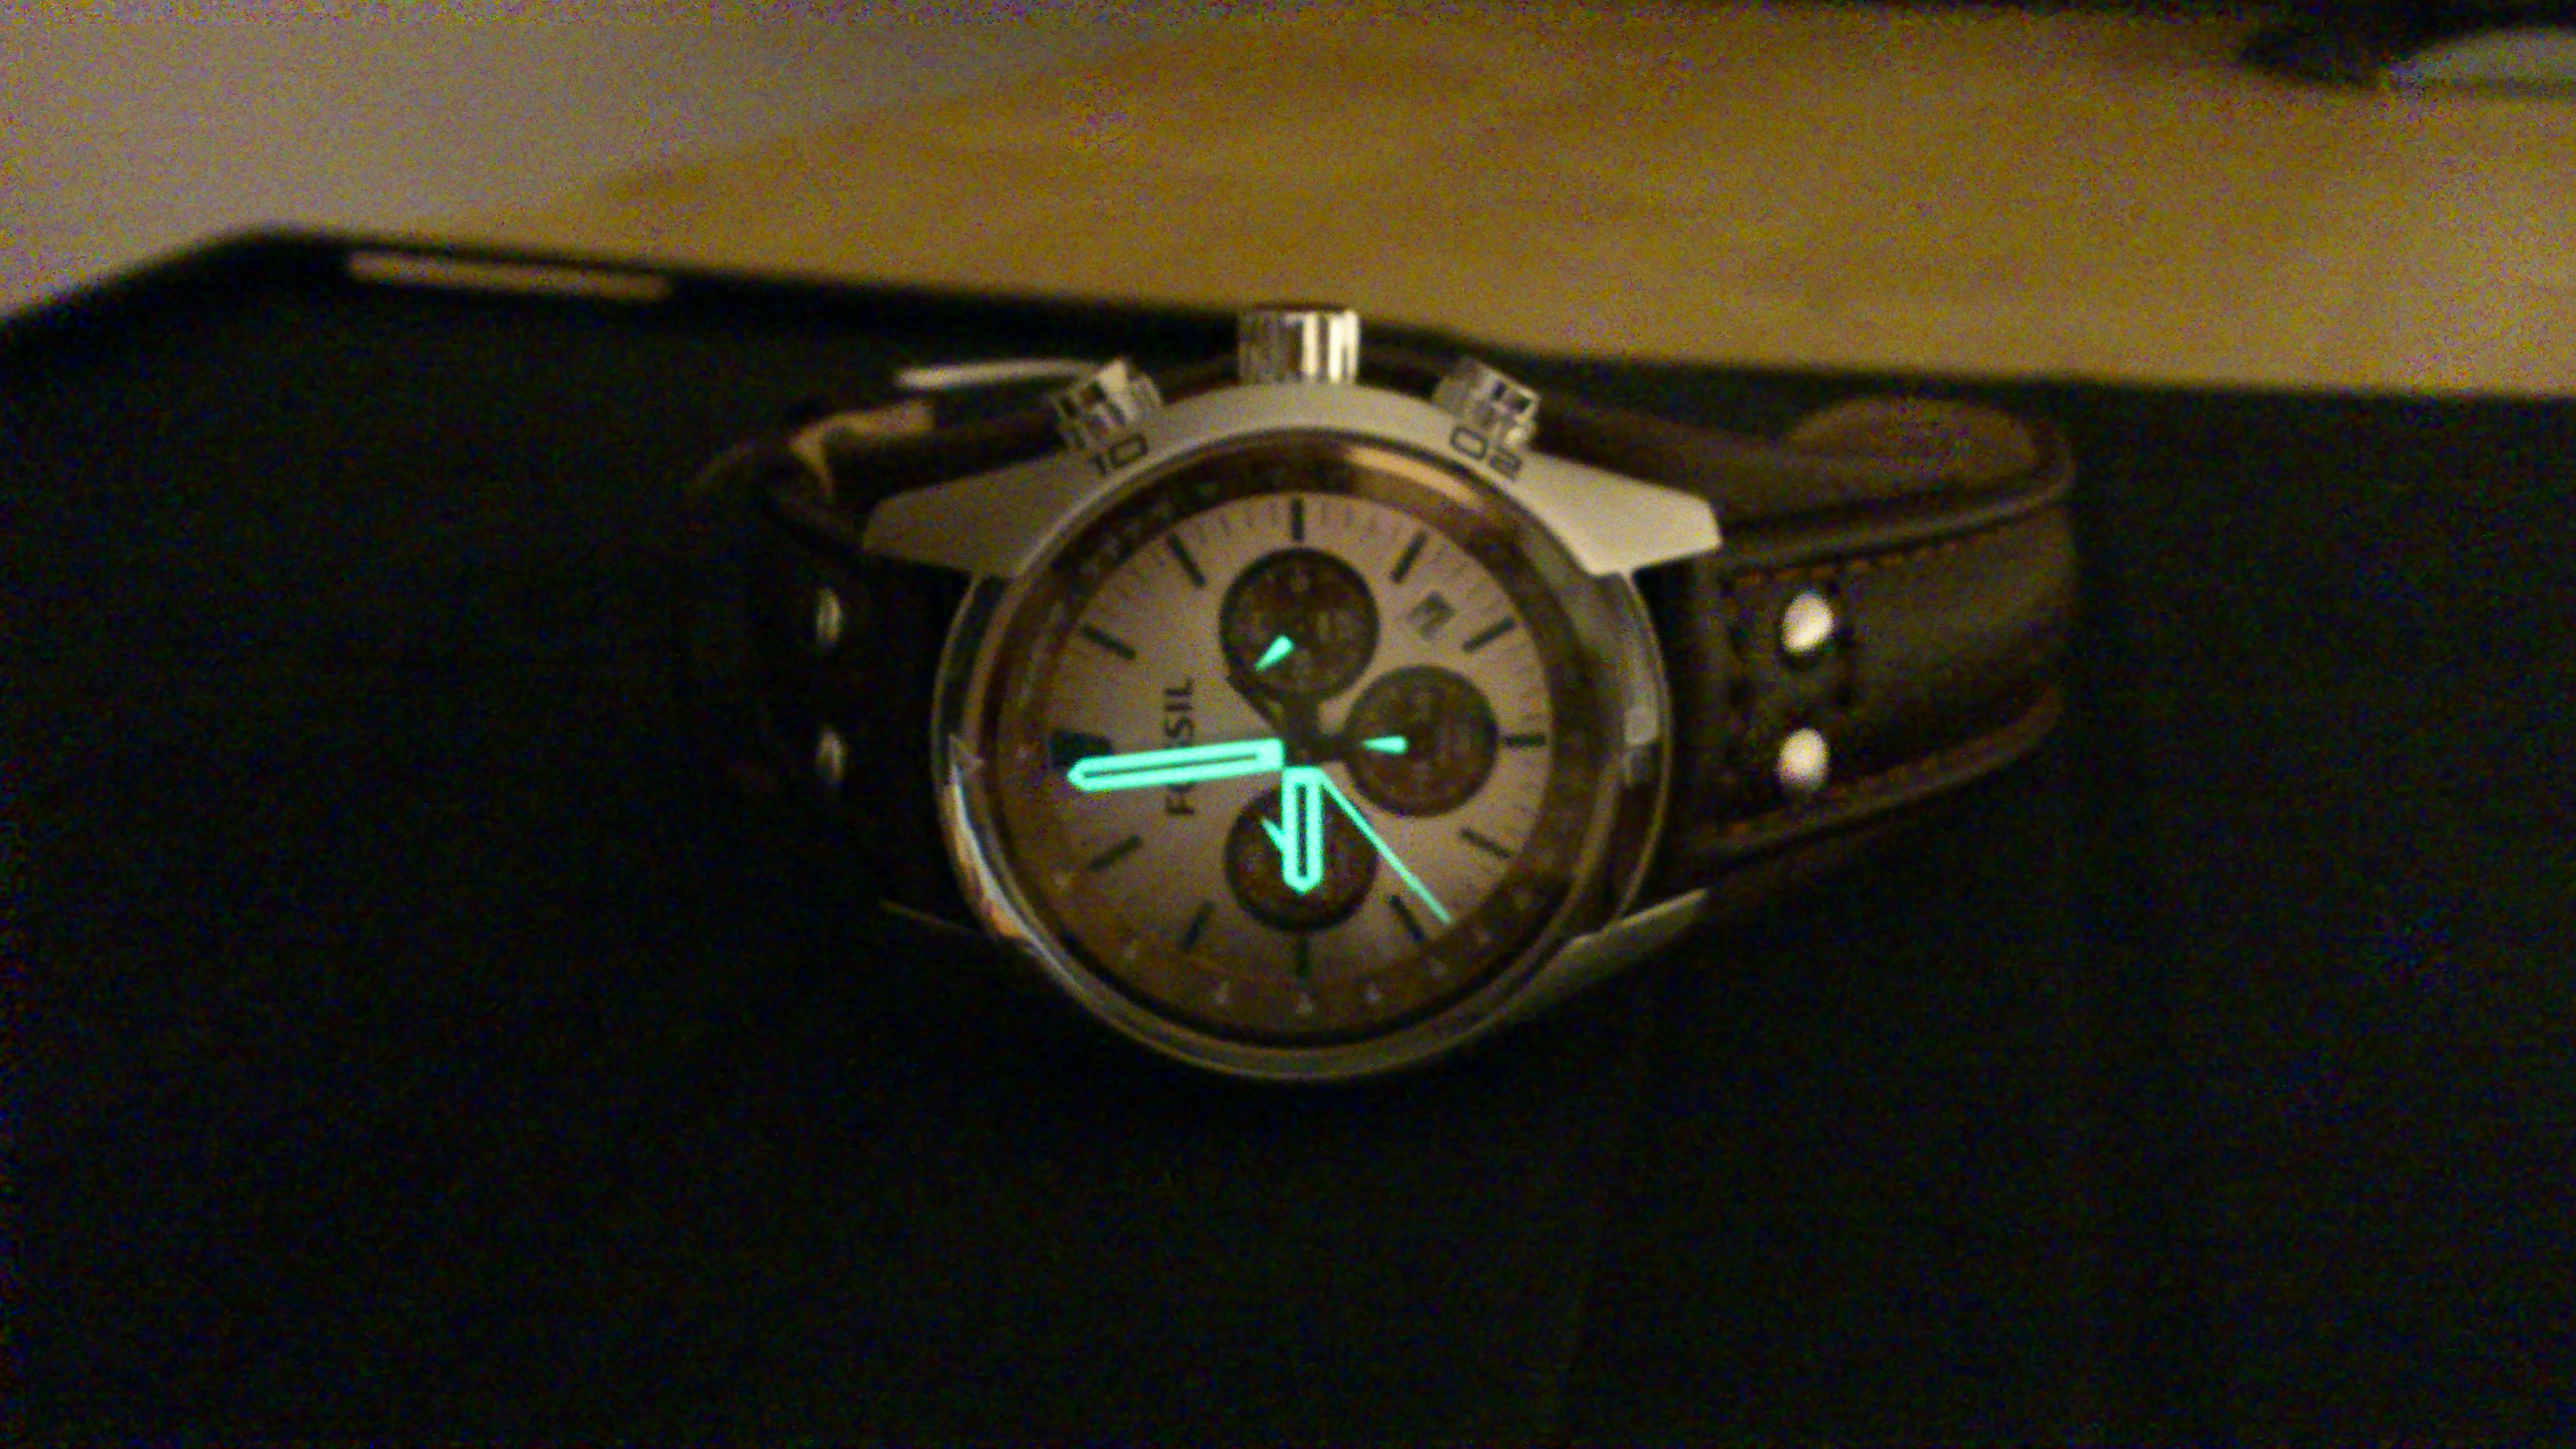 a499b5d17 Perfect manufactured watch with very nice leather cuff strap. Wanted to  change my previous Diesel watch for casual wear and this was the RIGHT  choice.